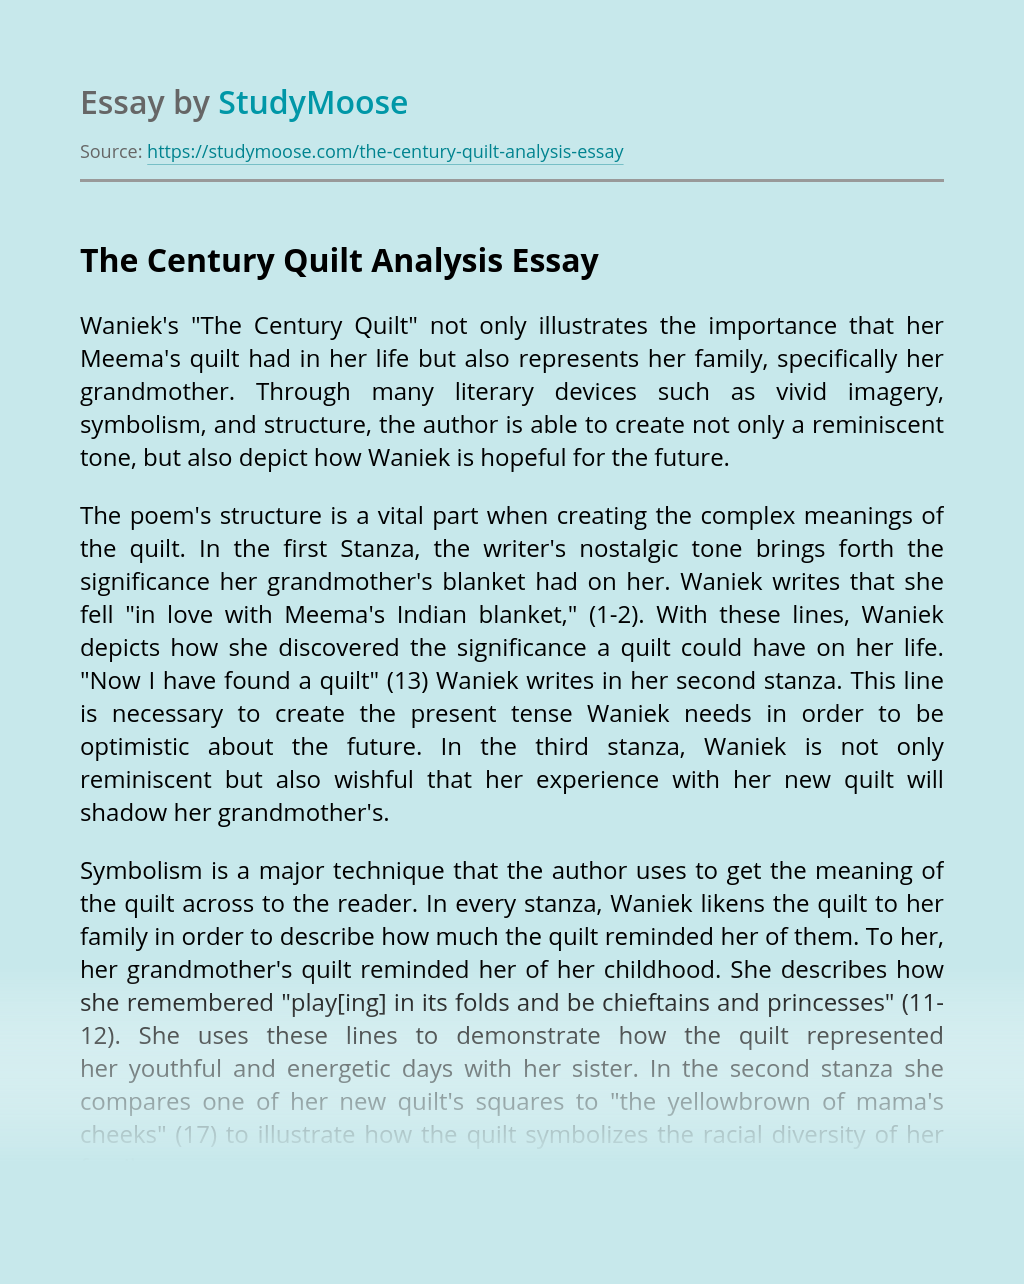 The Century Quilt Analysis